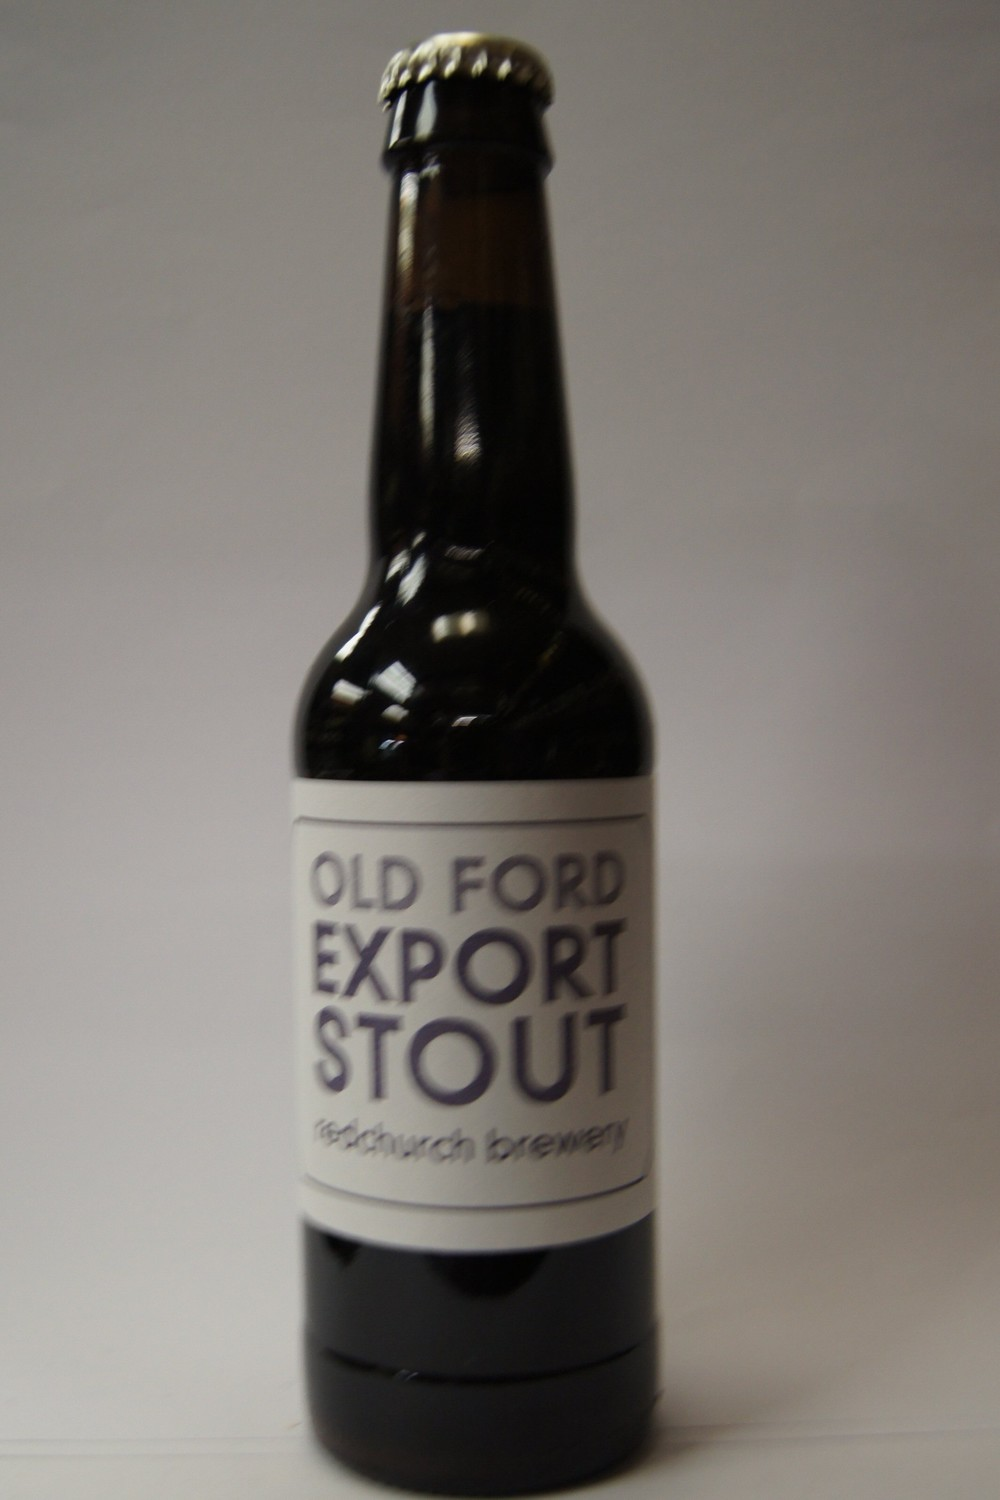 RED CHURCH BREWERY-Old Ford Export Stout.jpg